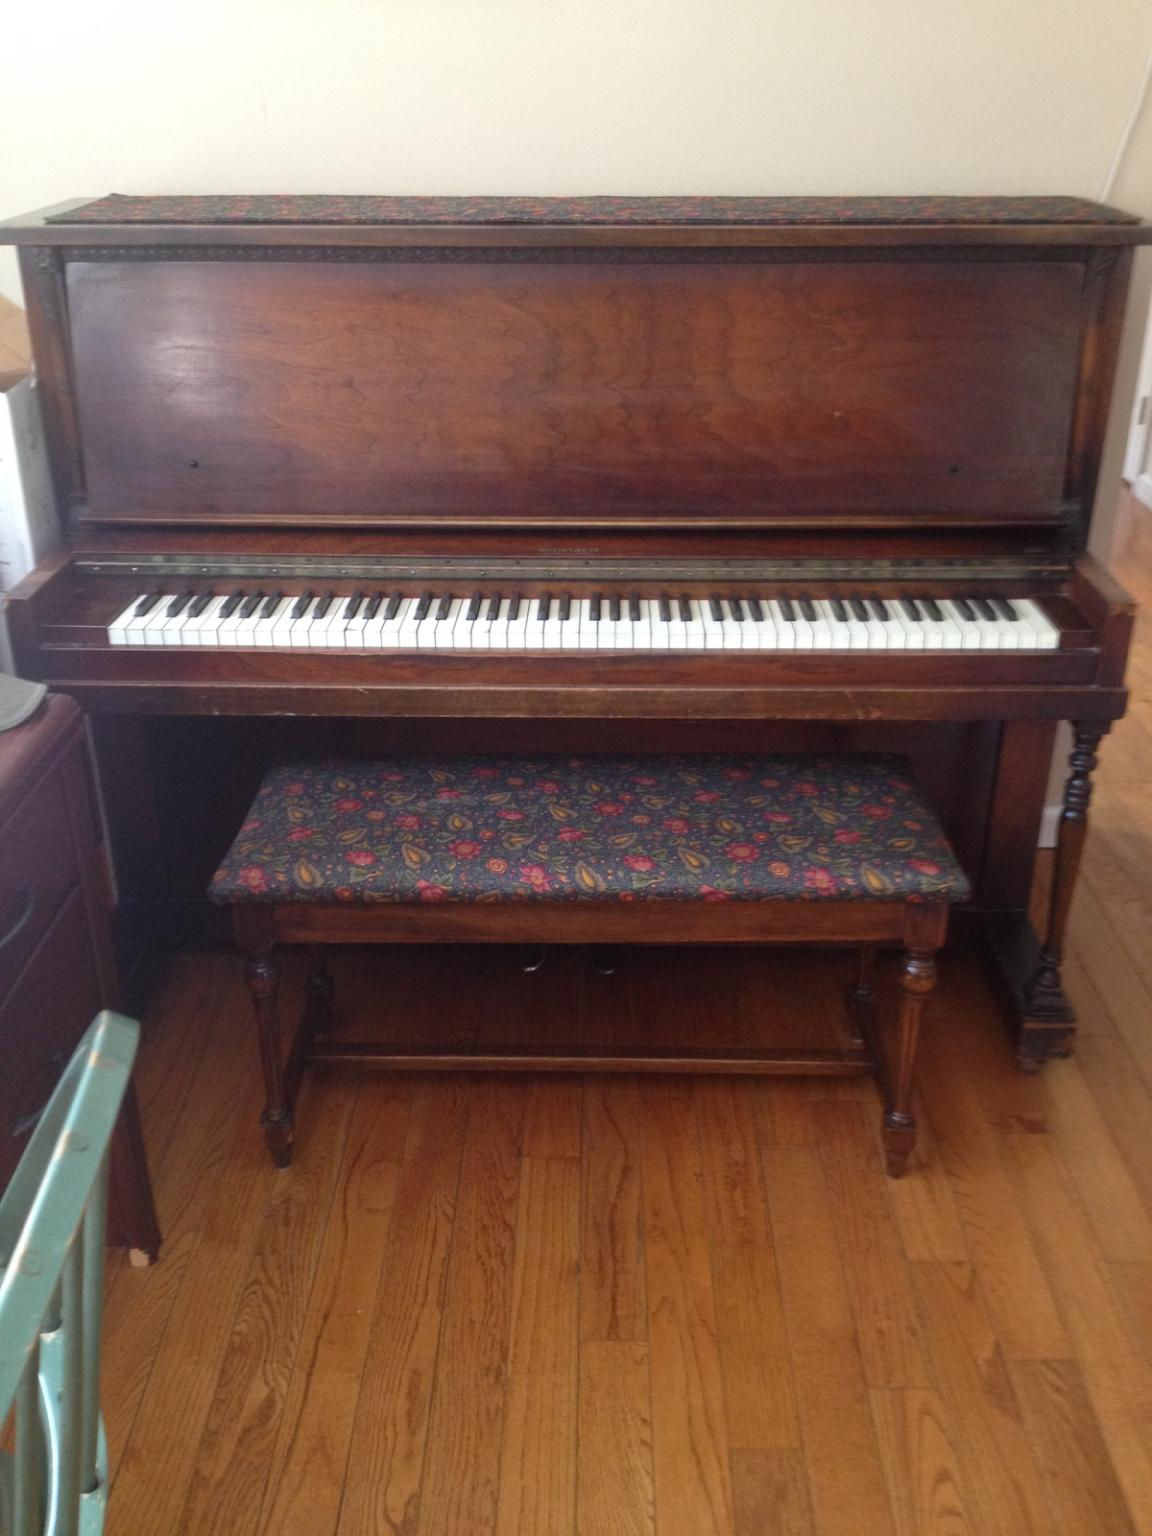 Upright piano mover little valley piano for What are the dimensions of an upright piano